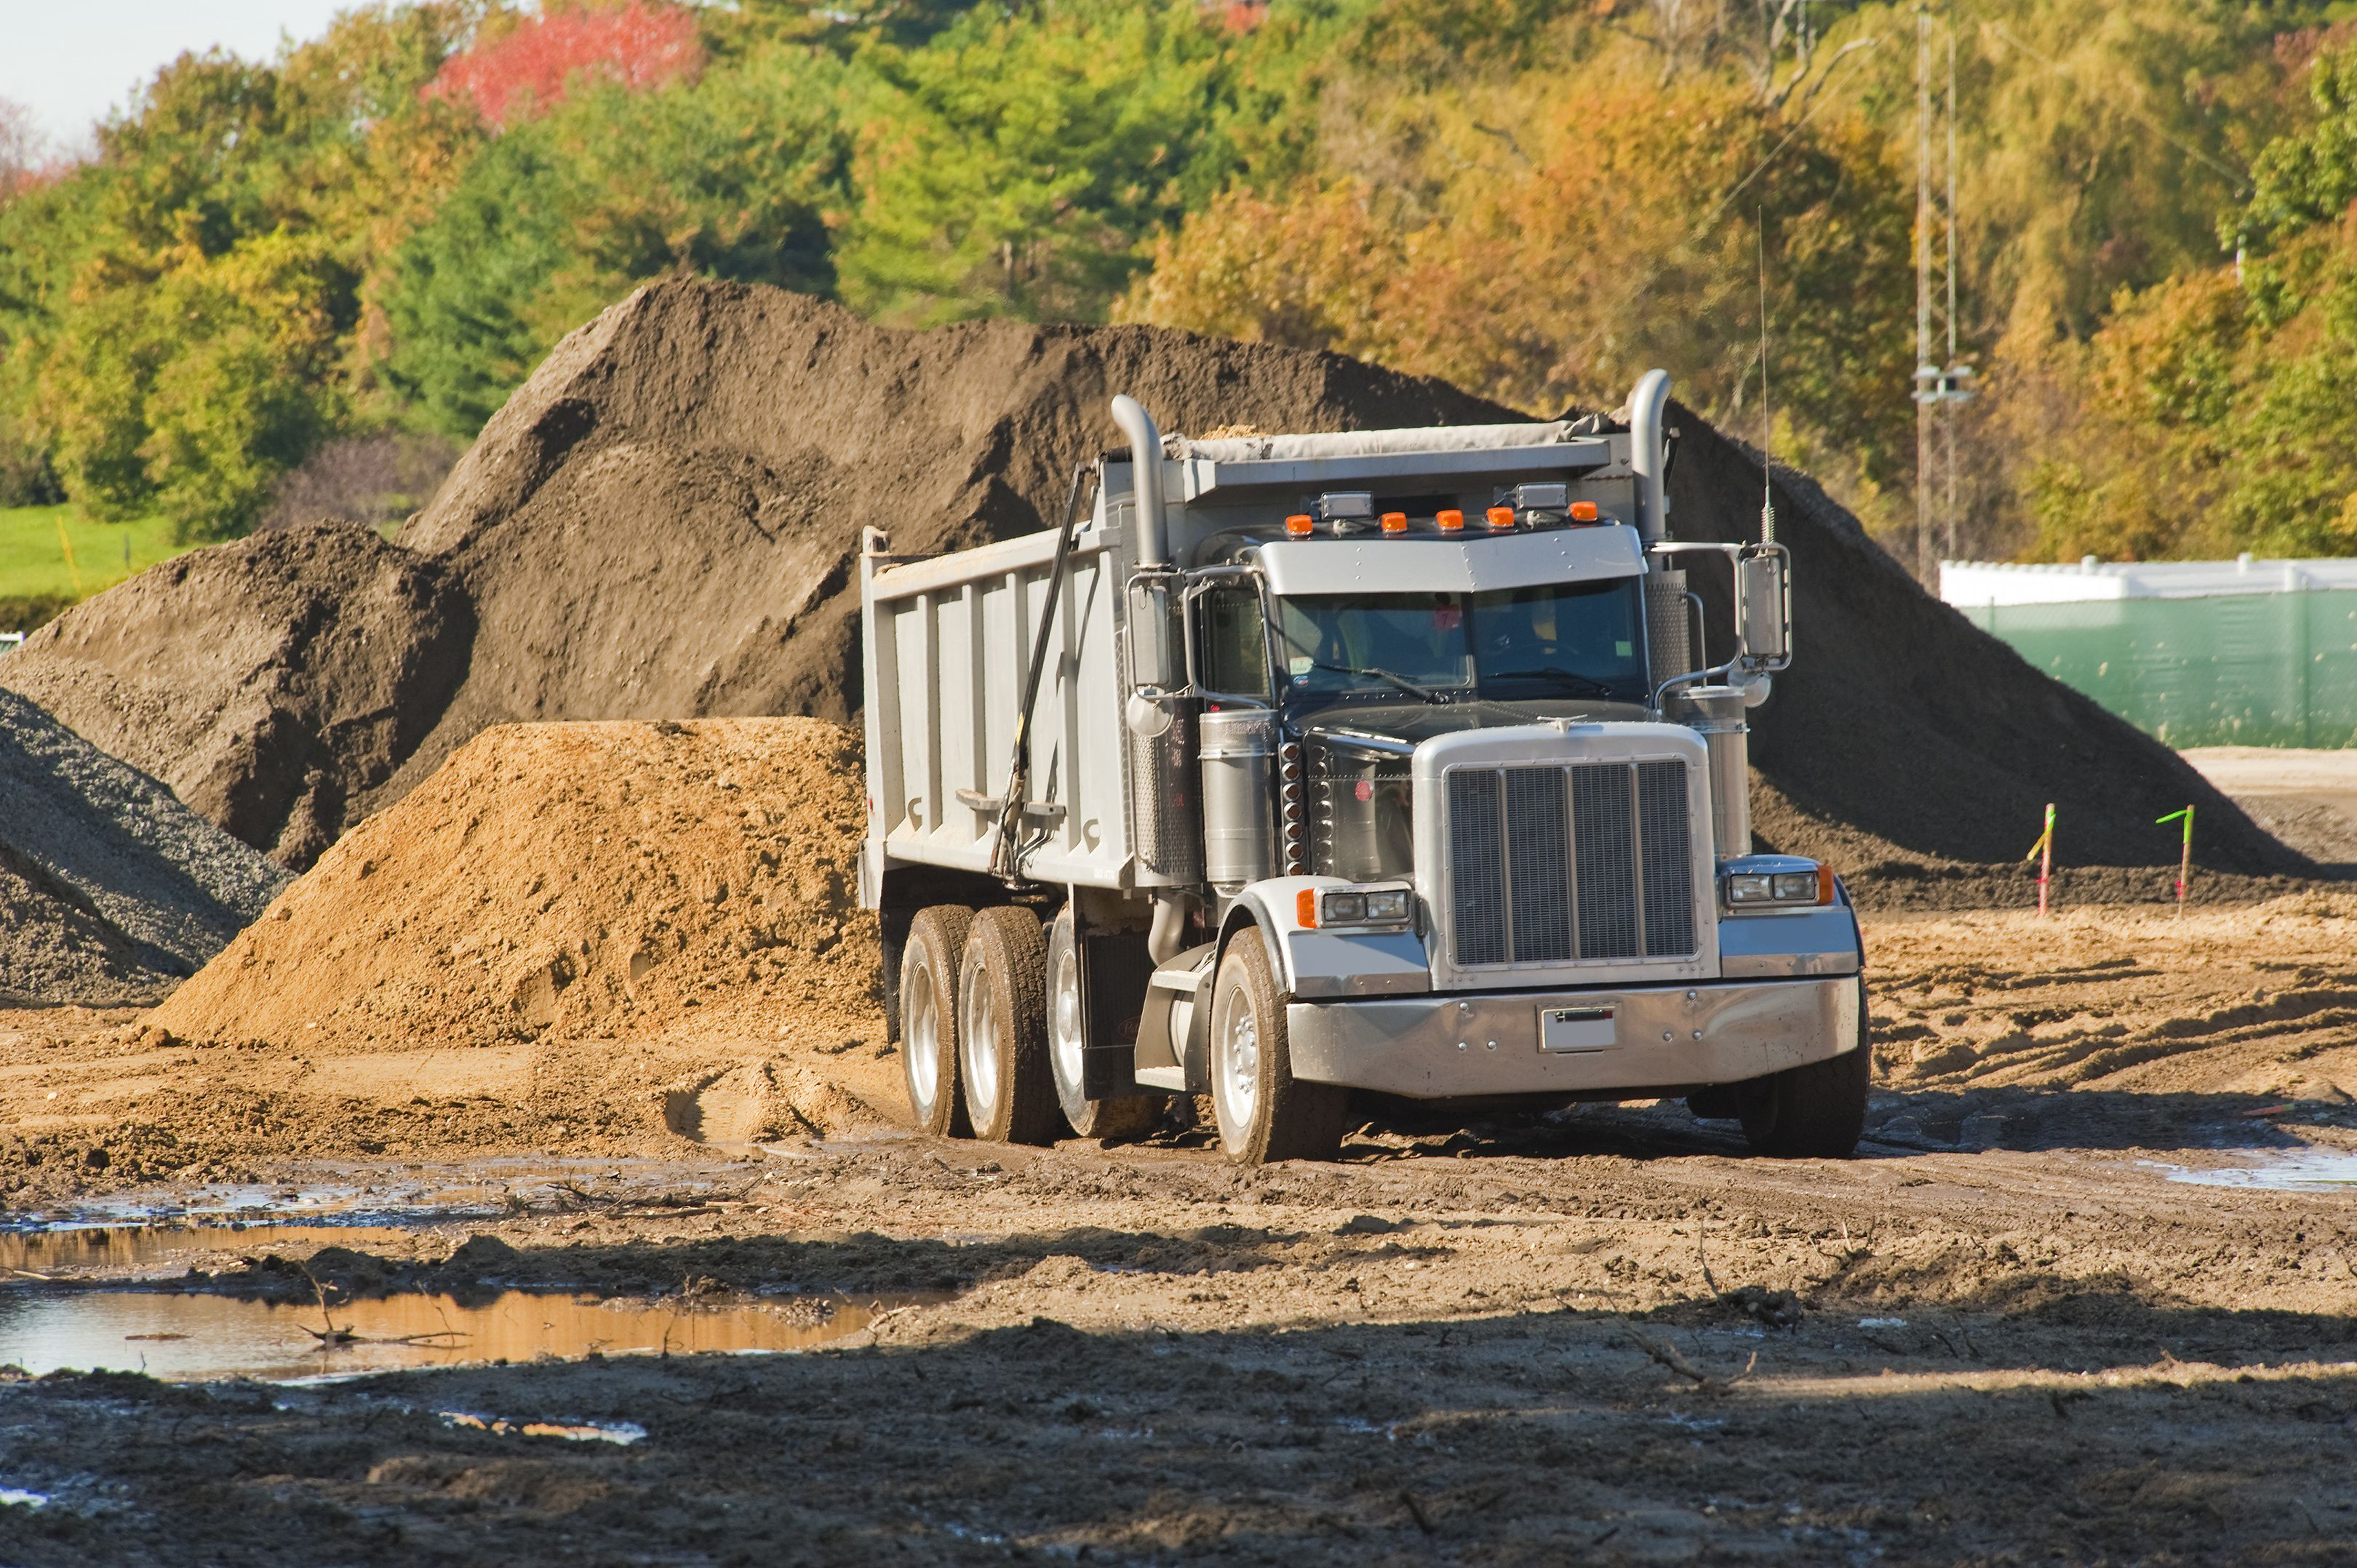 Aggregate trucking software is helping trucking businesses